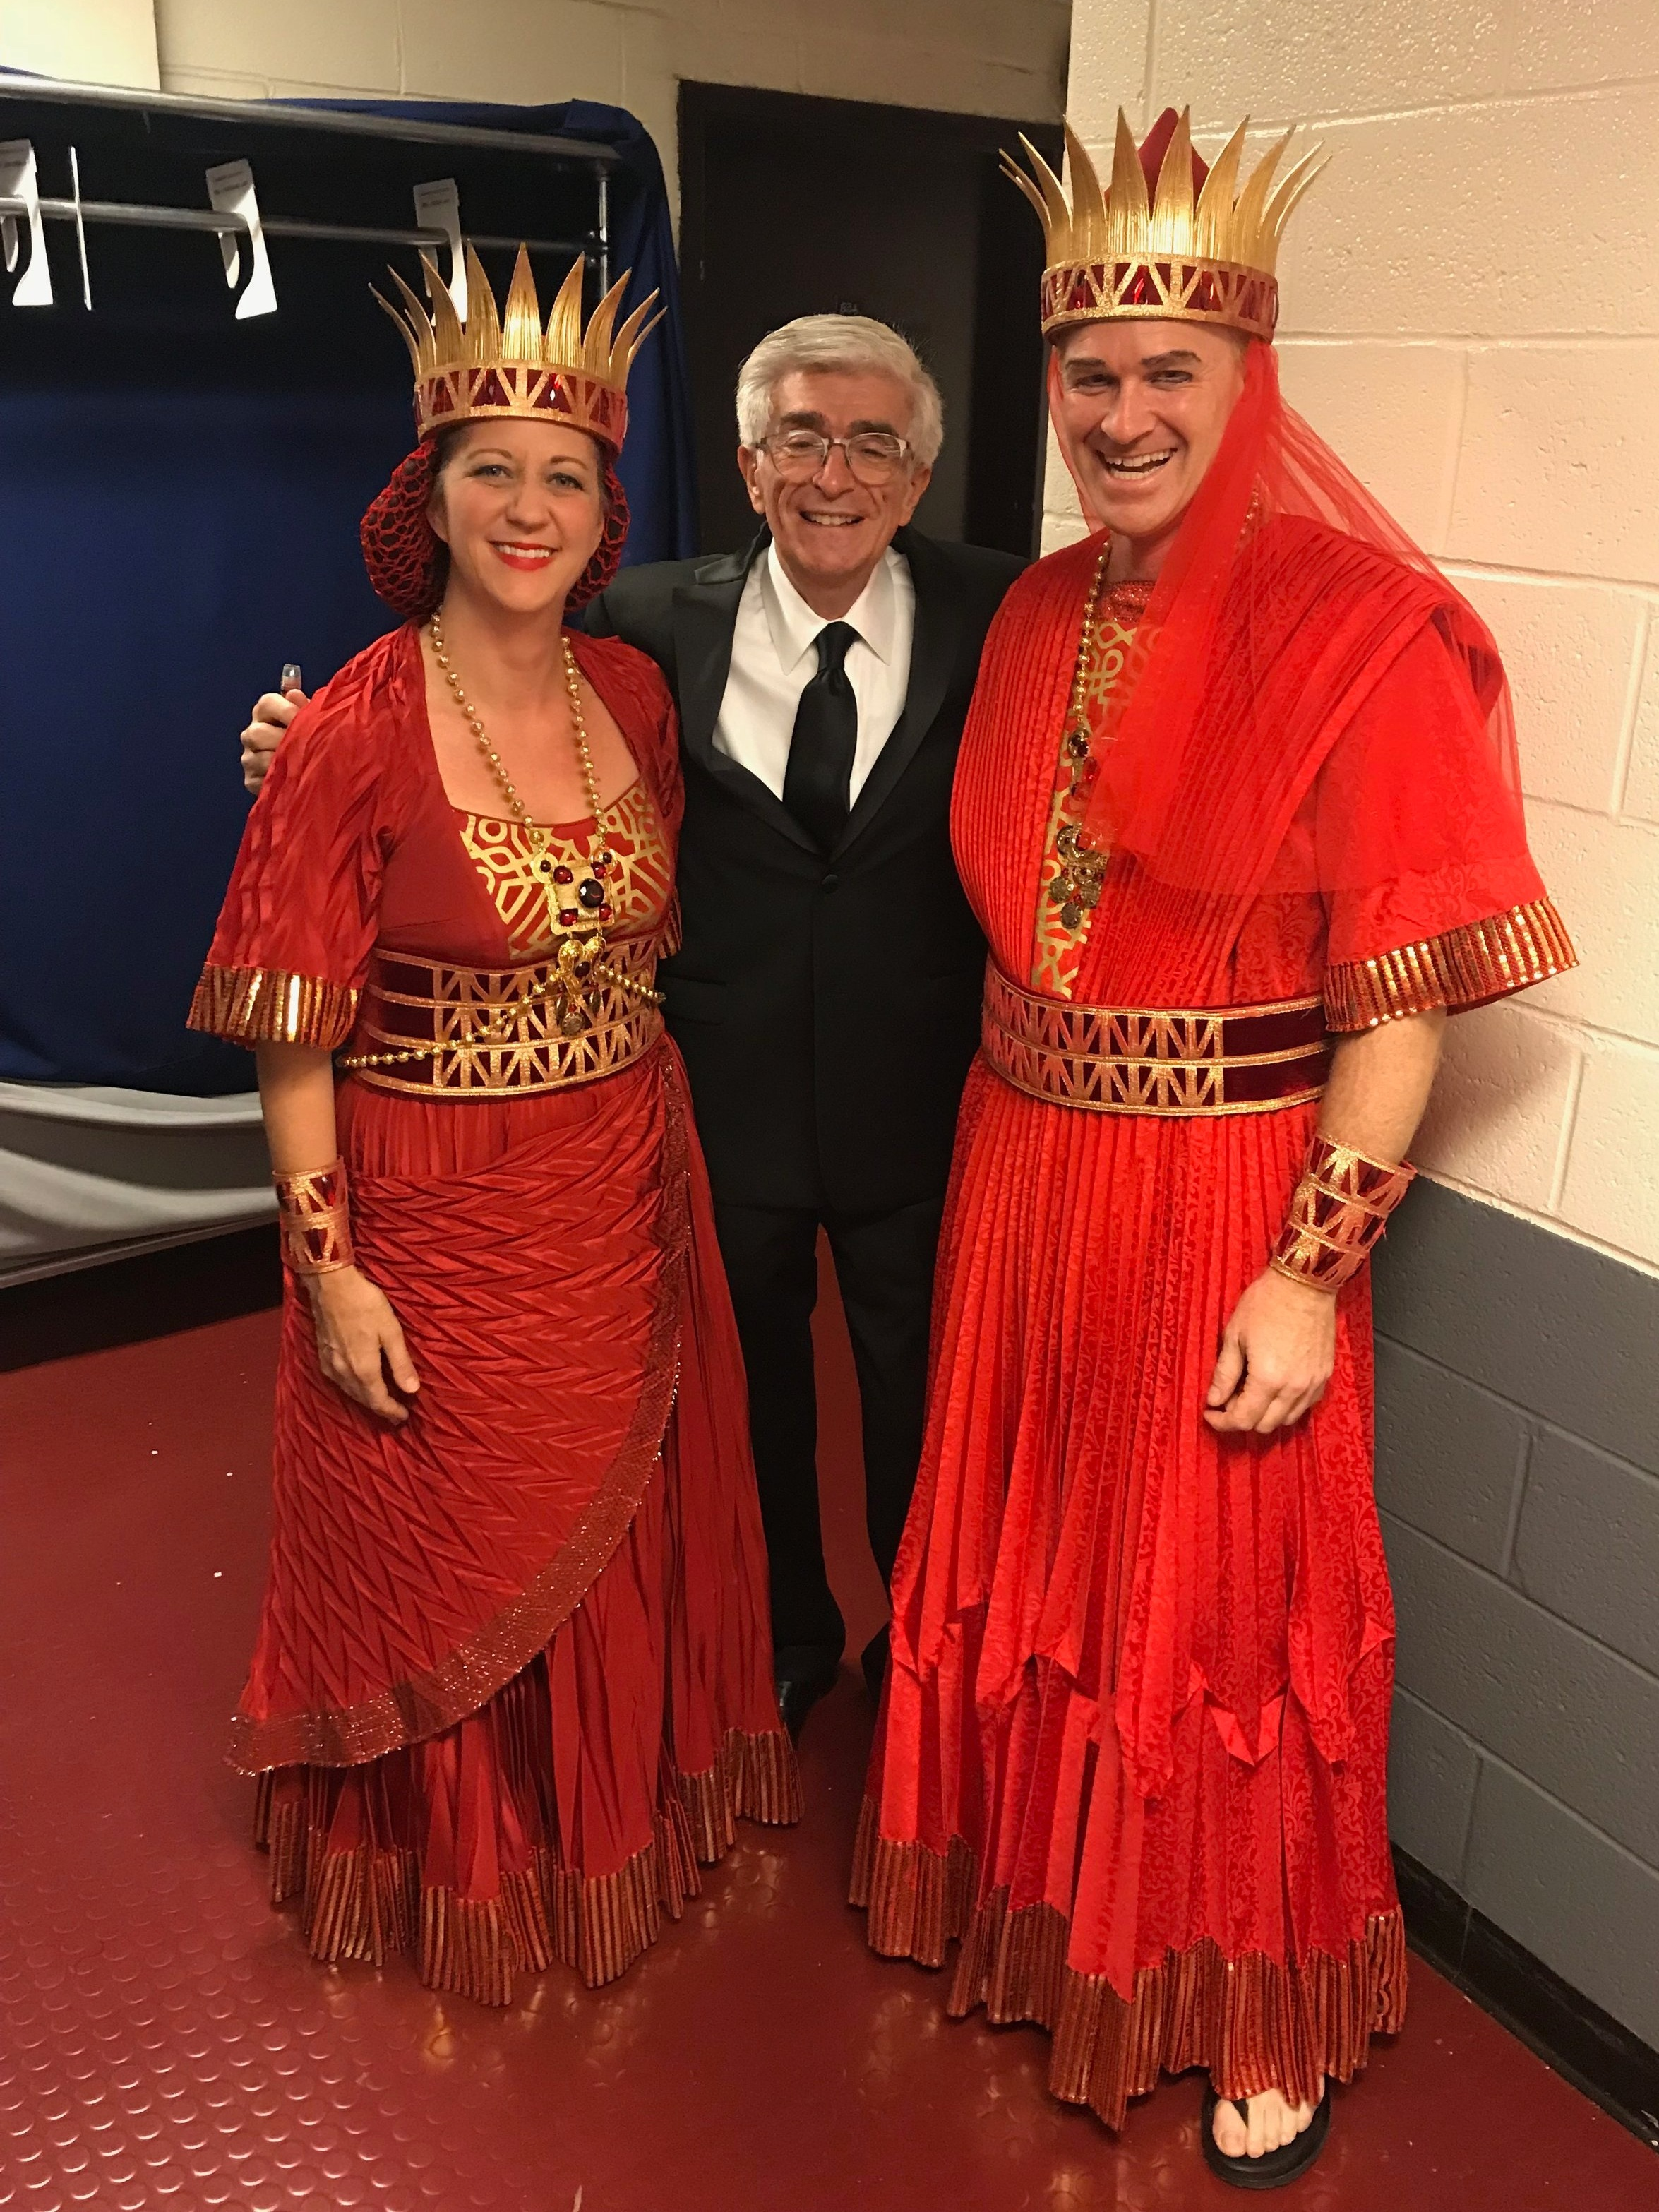 Christina, Maestro Palumbo, and Brian, on the opening night of Samson et Dalilah, which was Brian's first opening production as a full-timer!